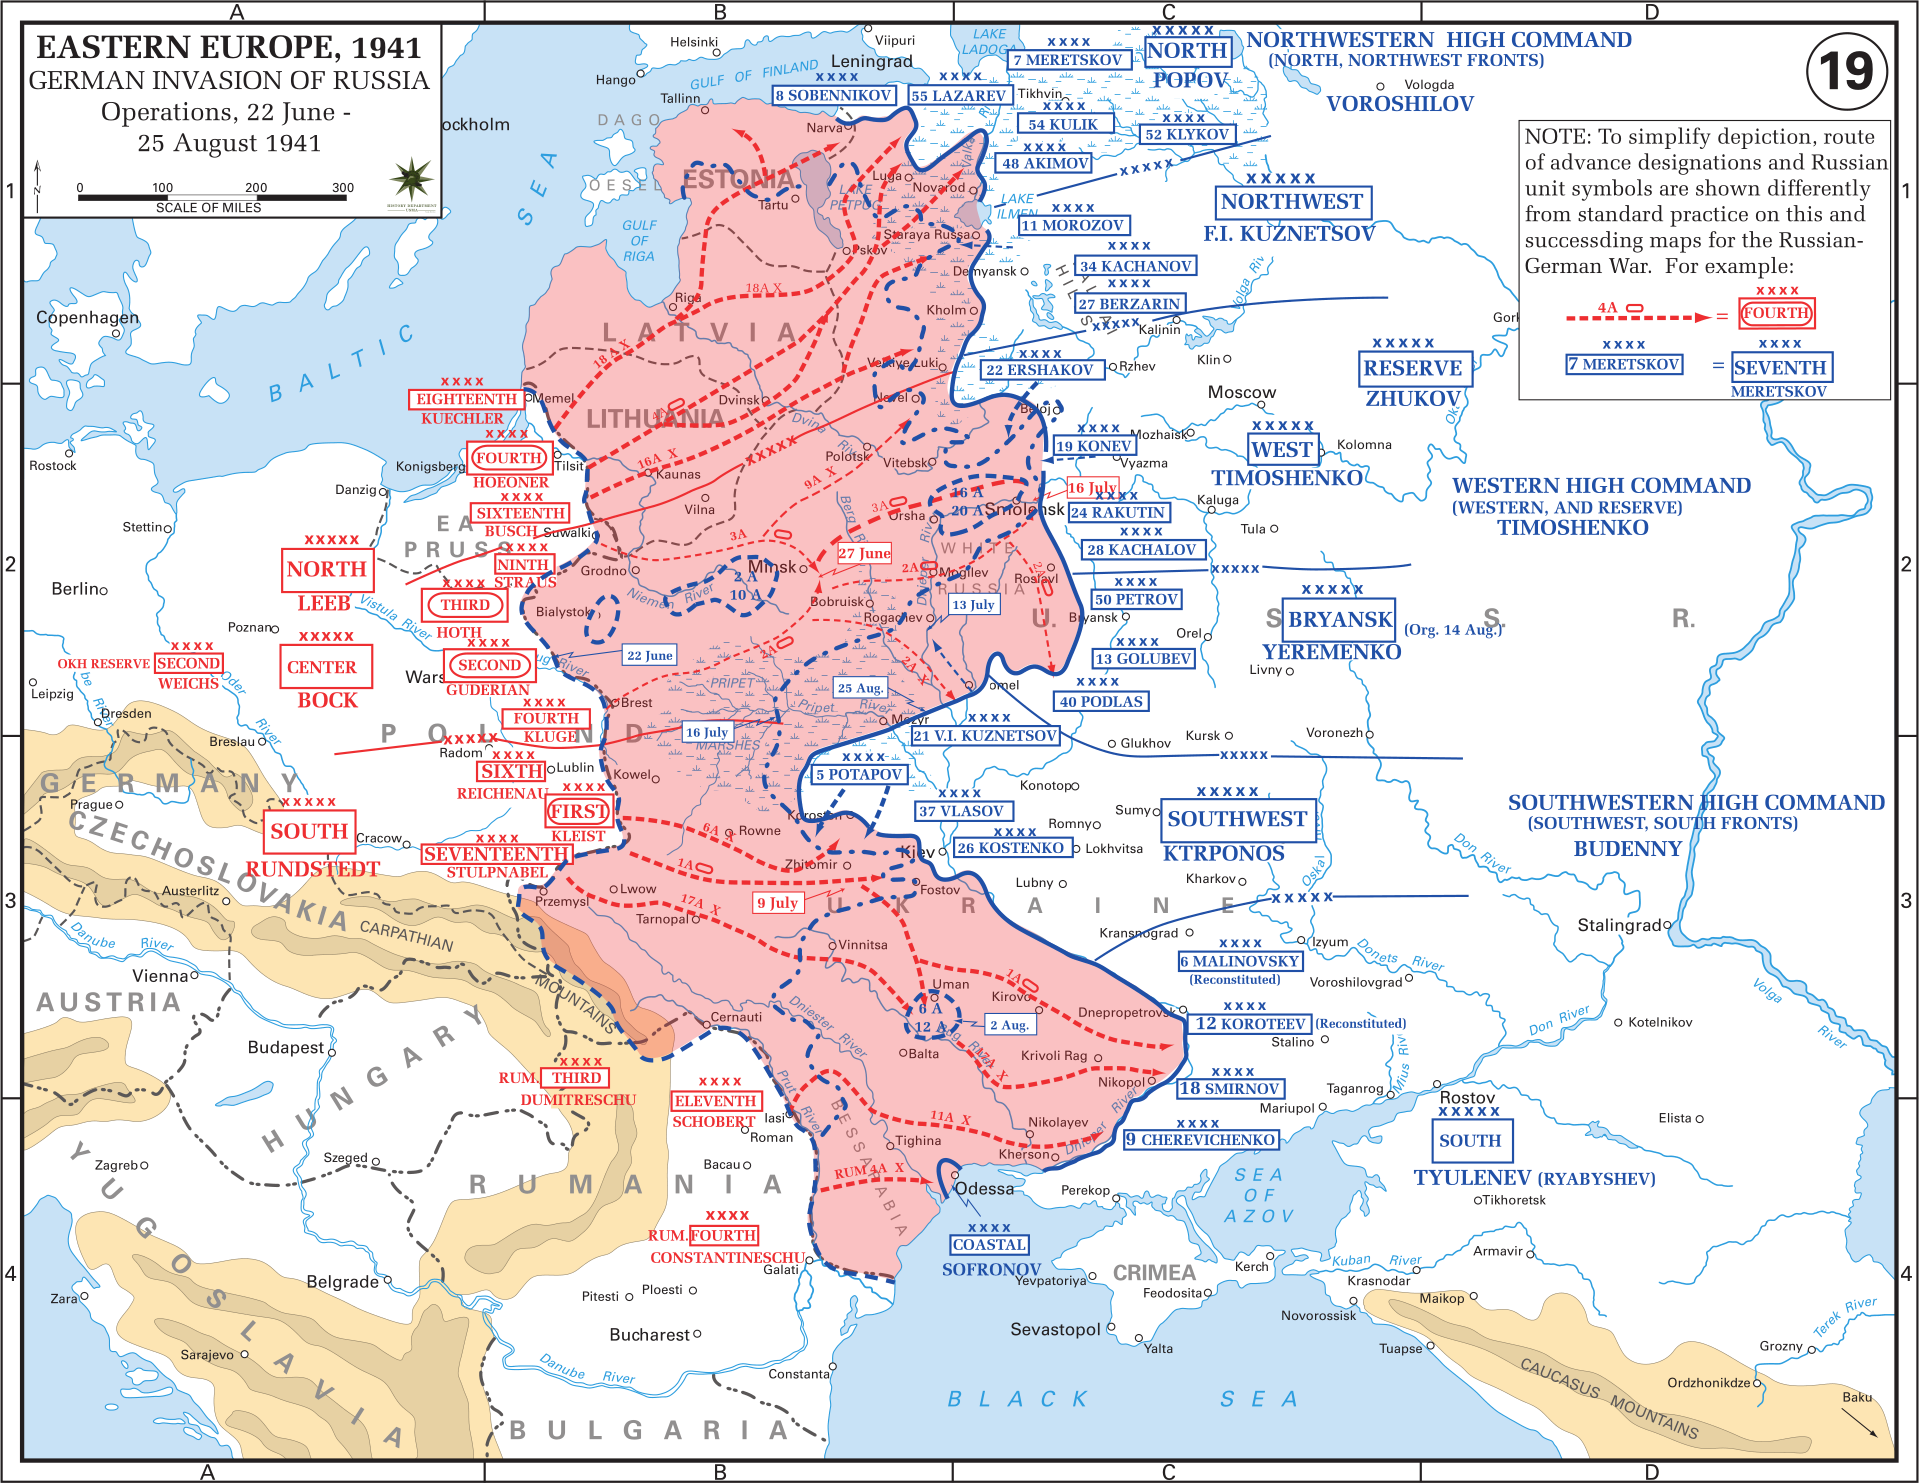 Germany On Map Of World.Eastern Front Maps Of World War Ii Inflab Medium